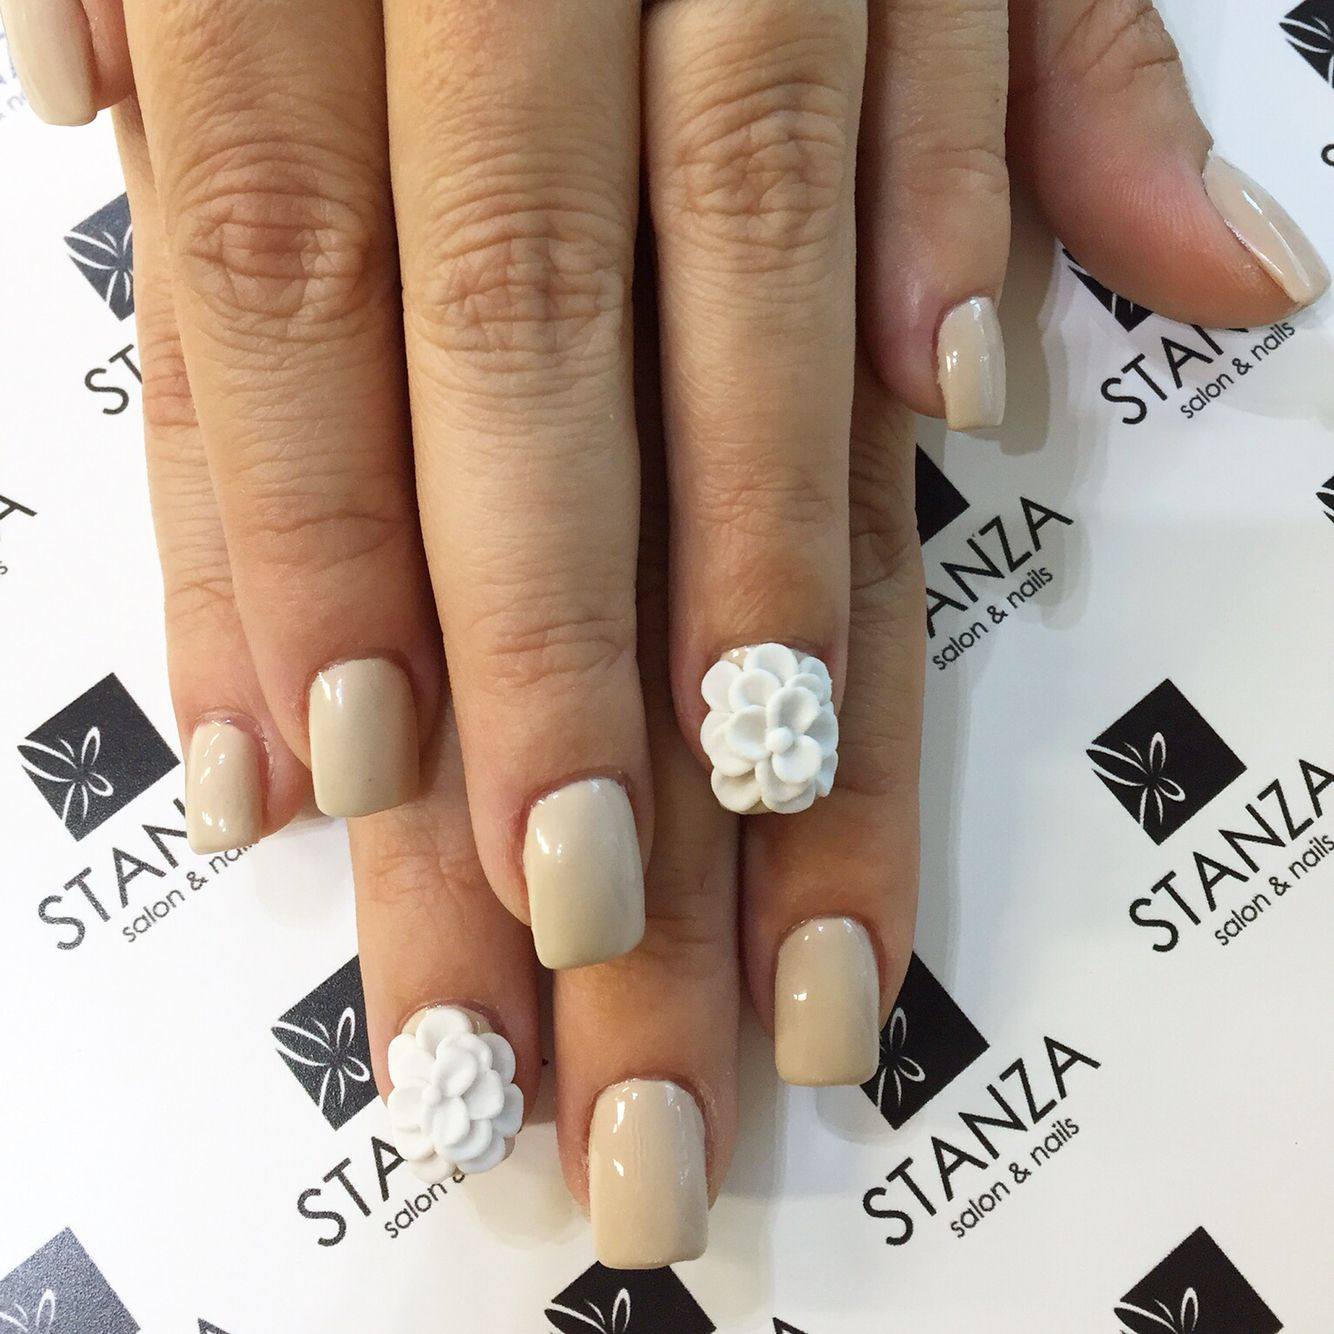 Stanzasalon Gelish 3D flowers nailart